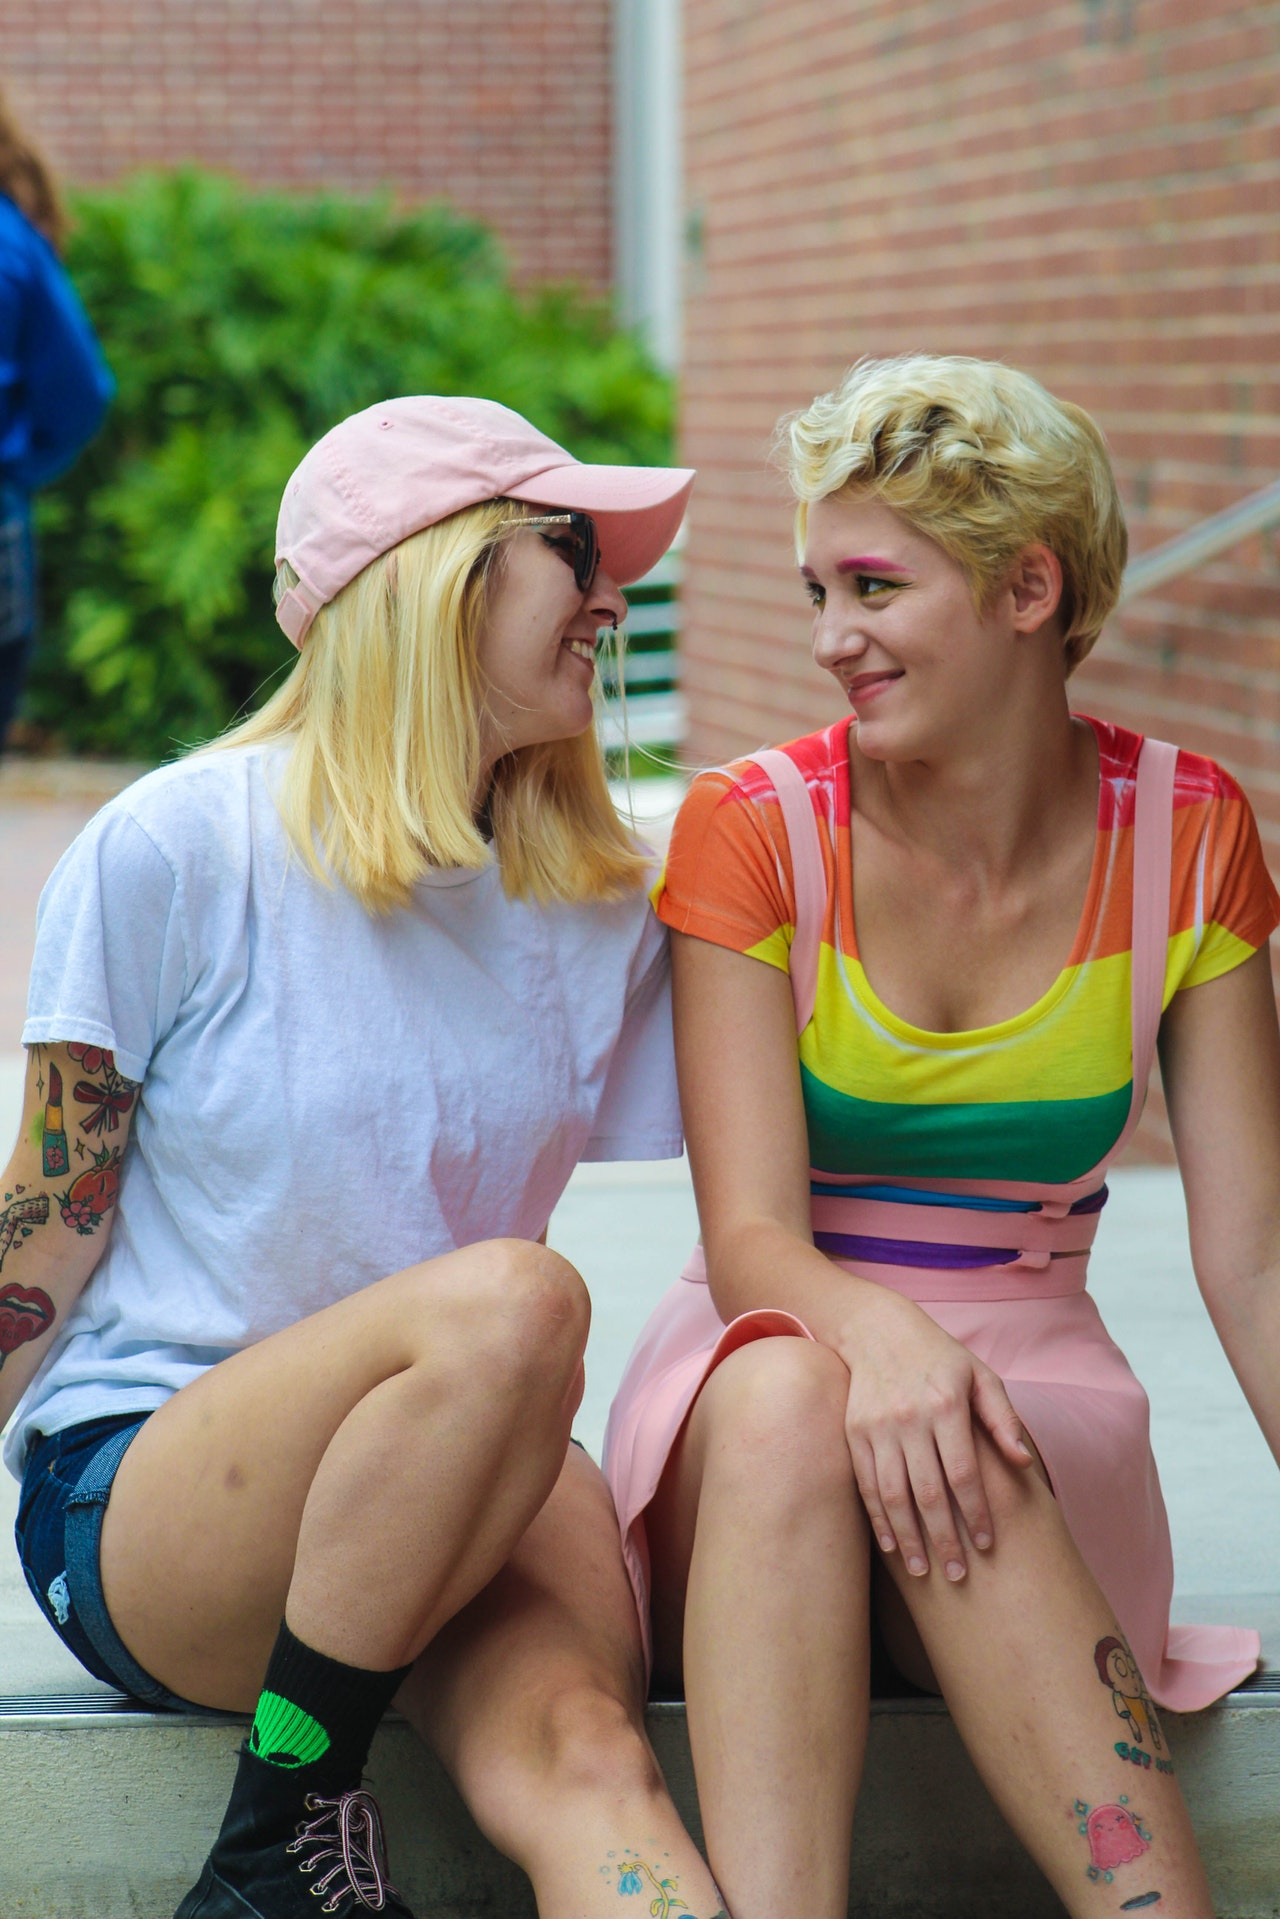 2 lesbian women siting close to each other